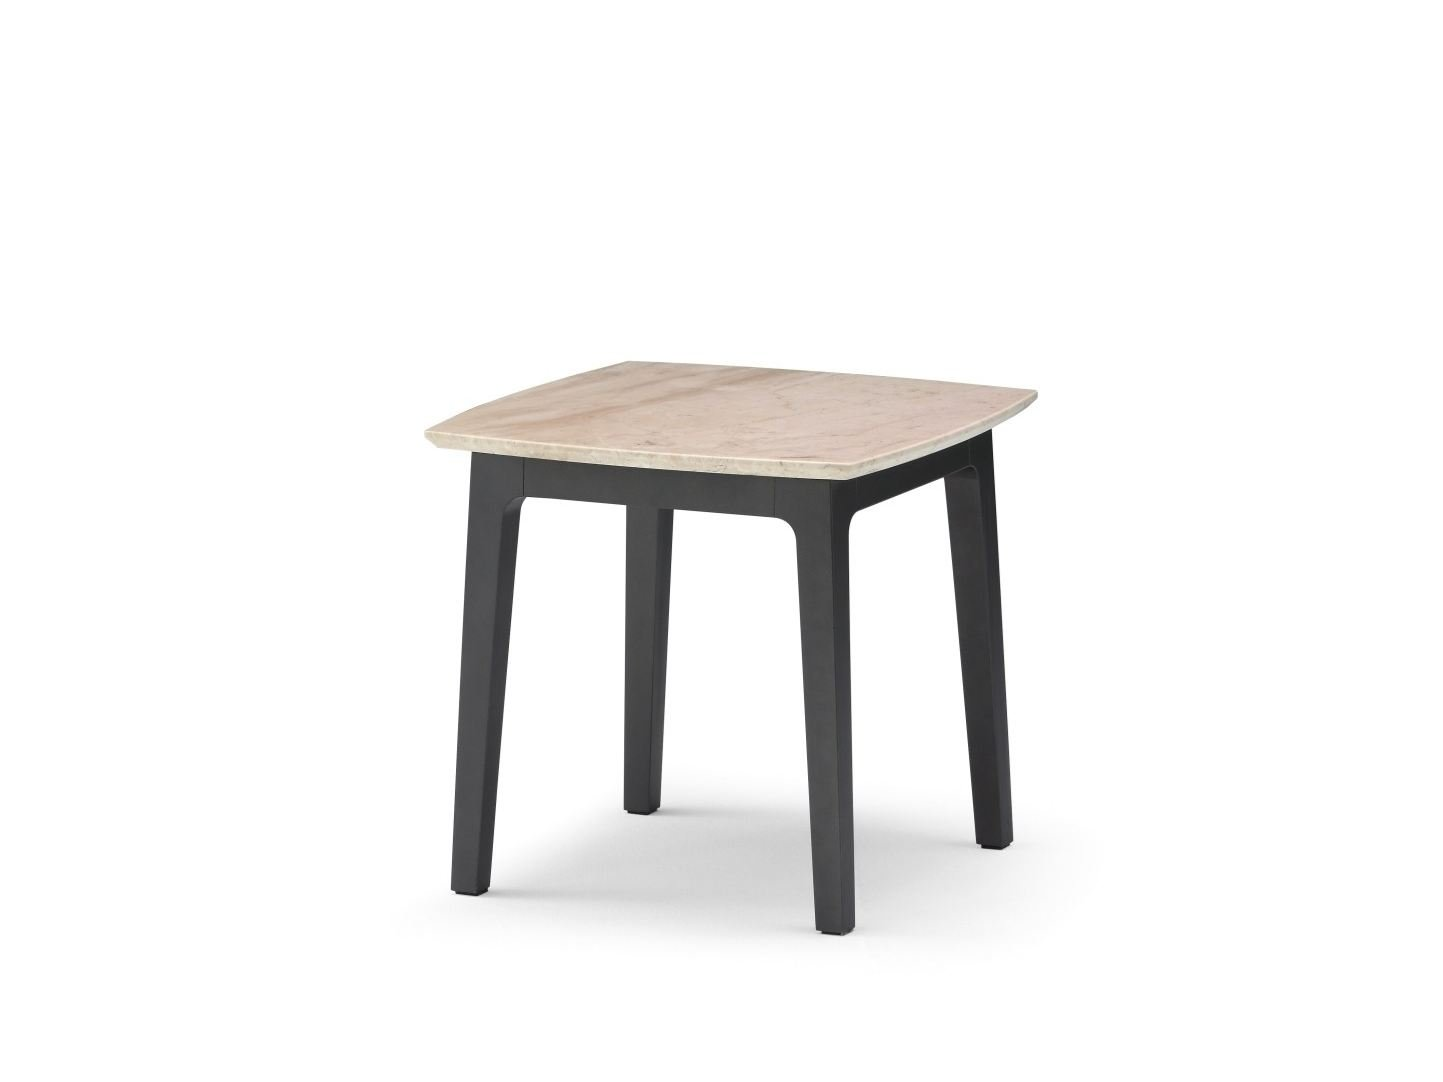 Olivier table d 39 appoint collection olivier by flou design - Table d appoint carree ...